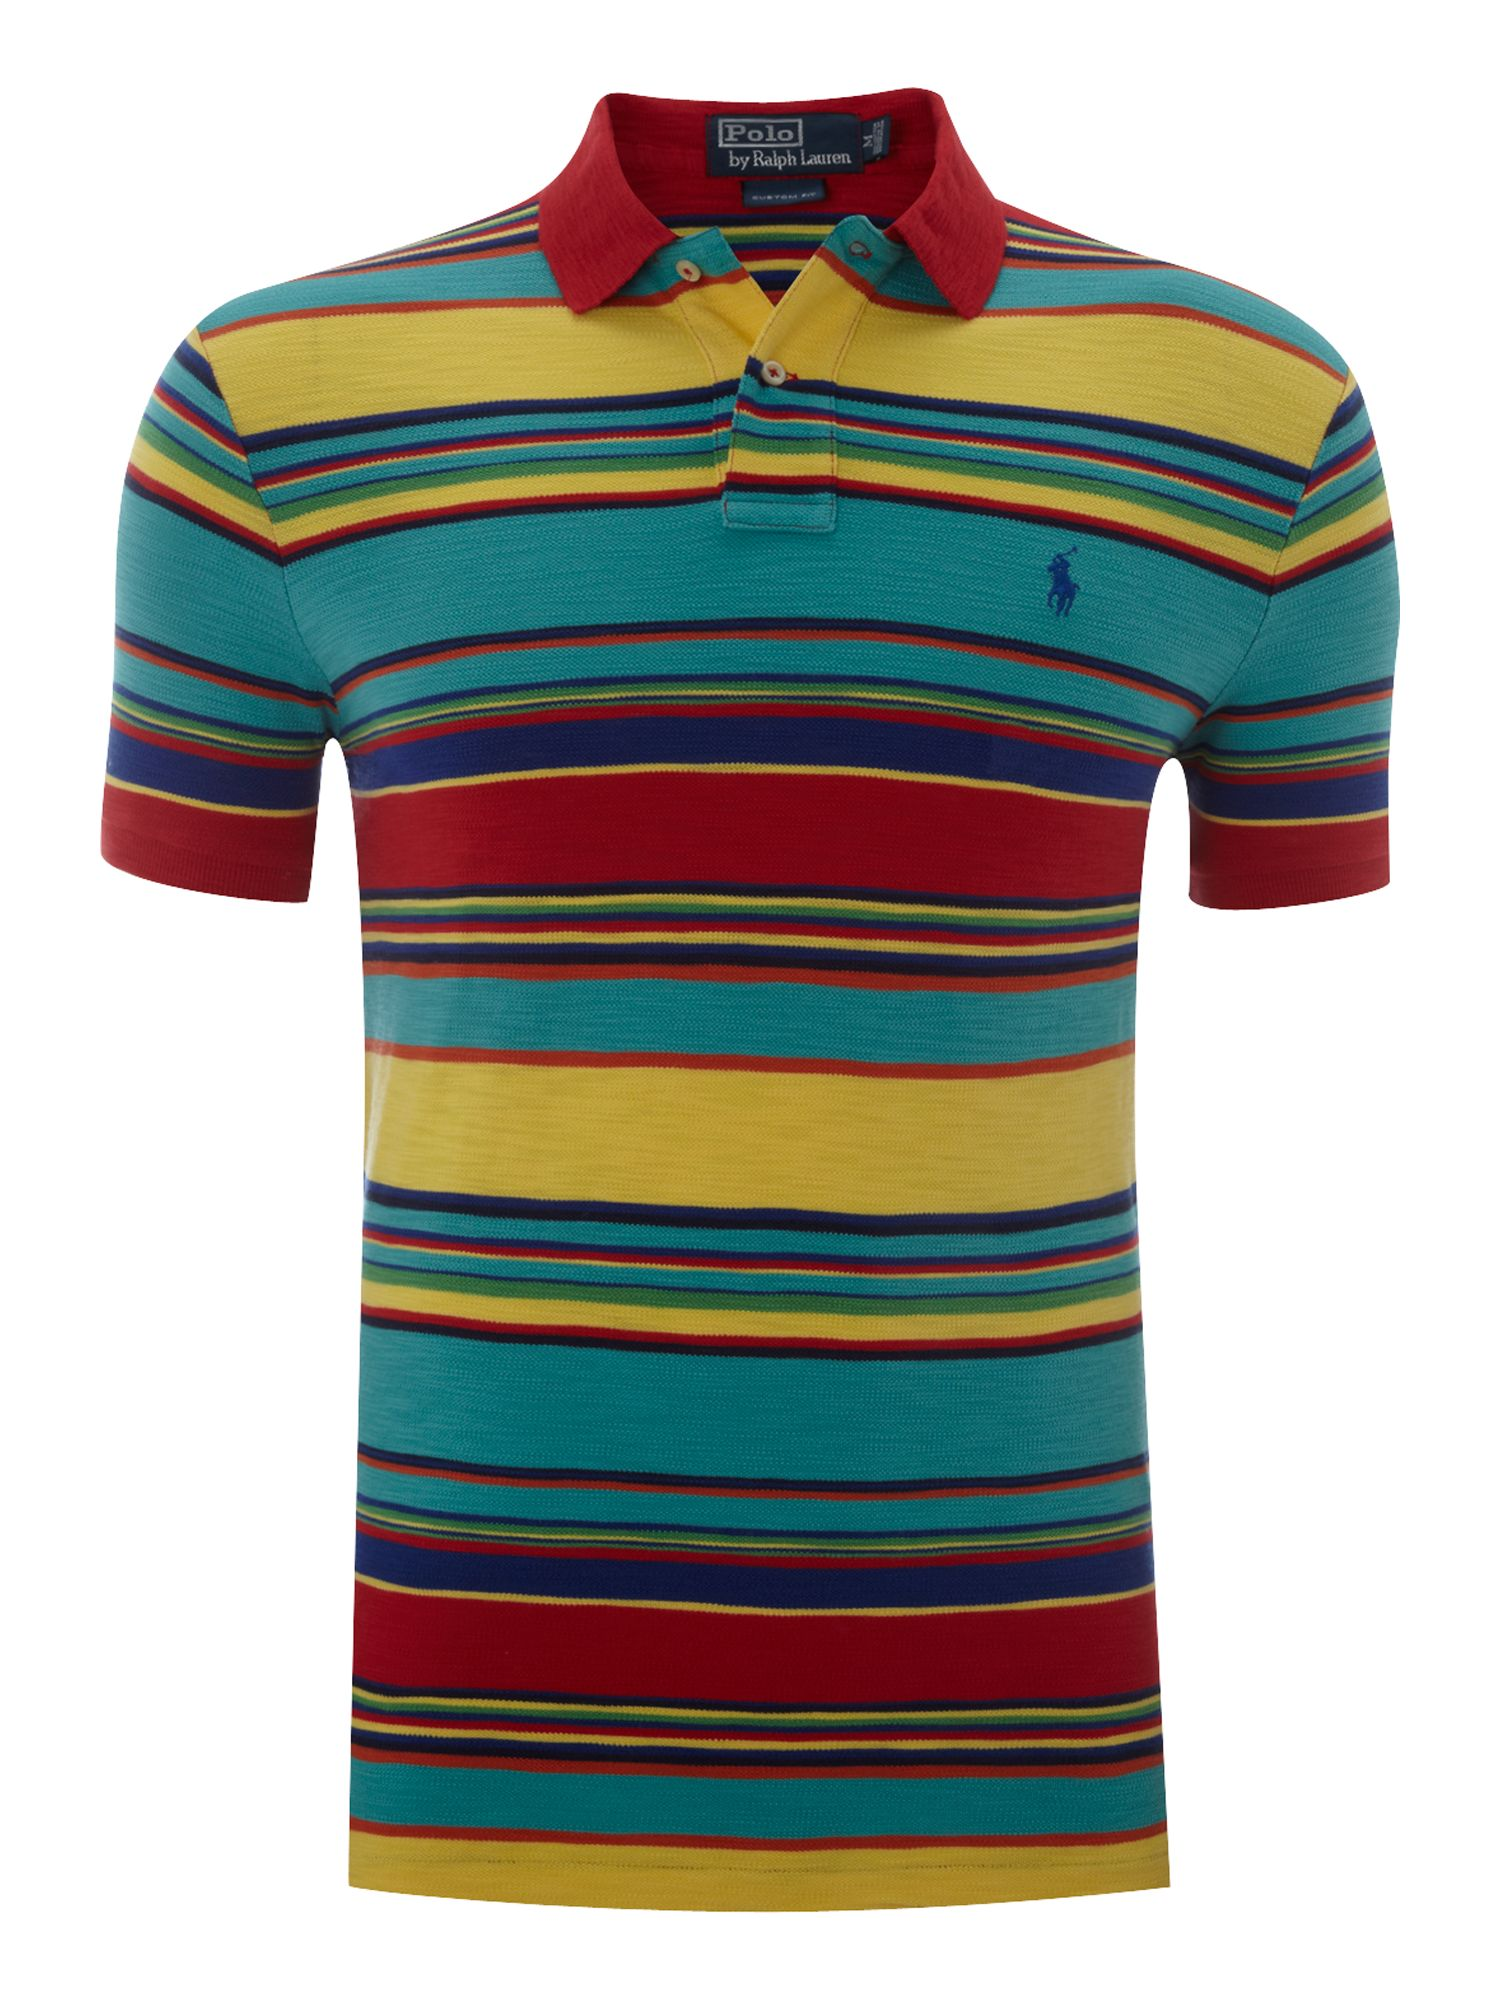 polo ralph lauren custom fitted multi striped polo shirt